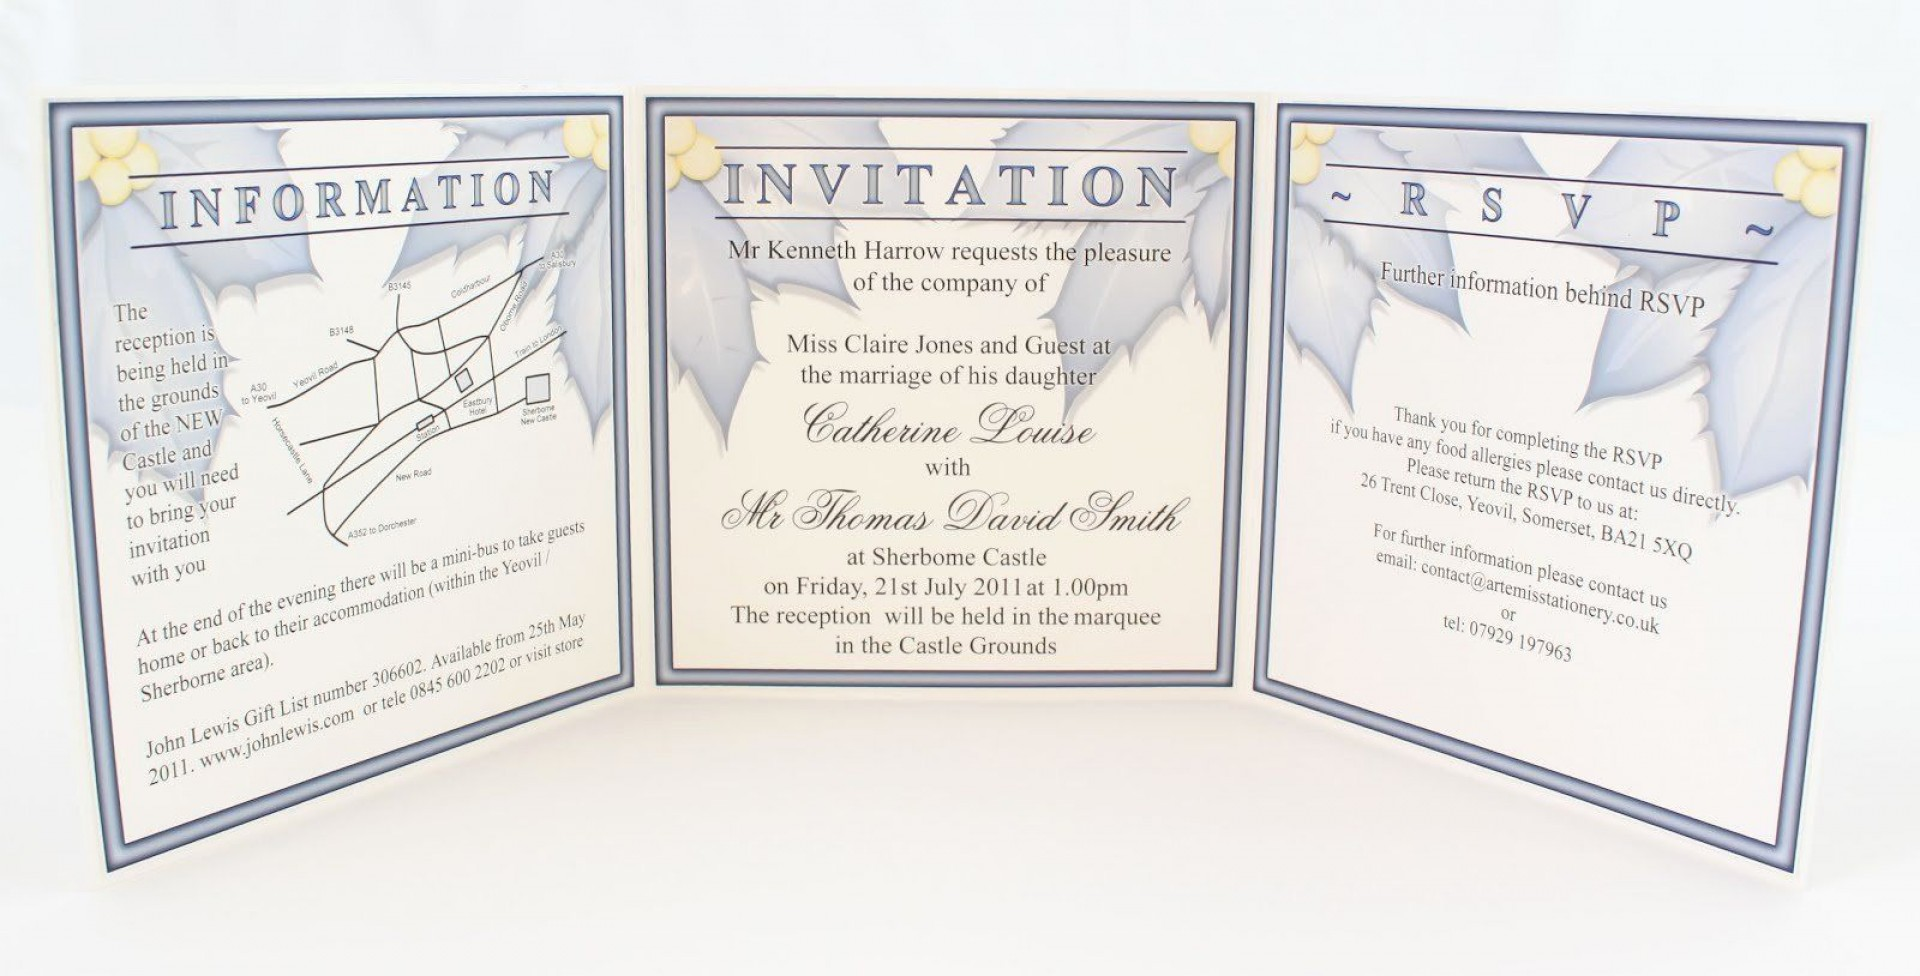 005 Archaicawful Microsoft Word Invitation Template 2 Per Page Image 1920